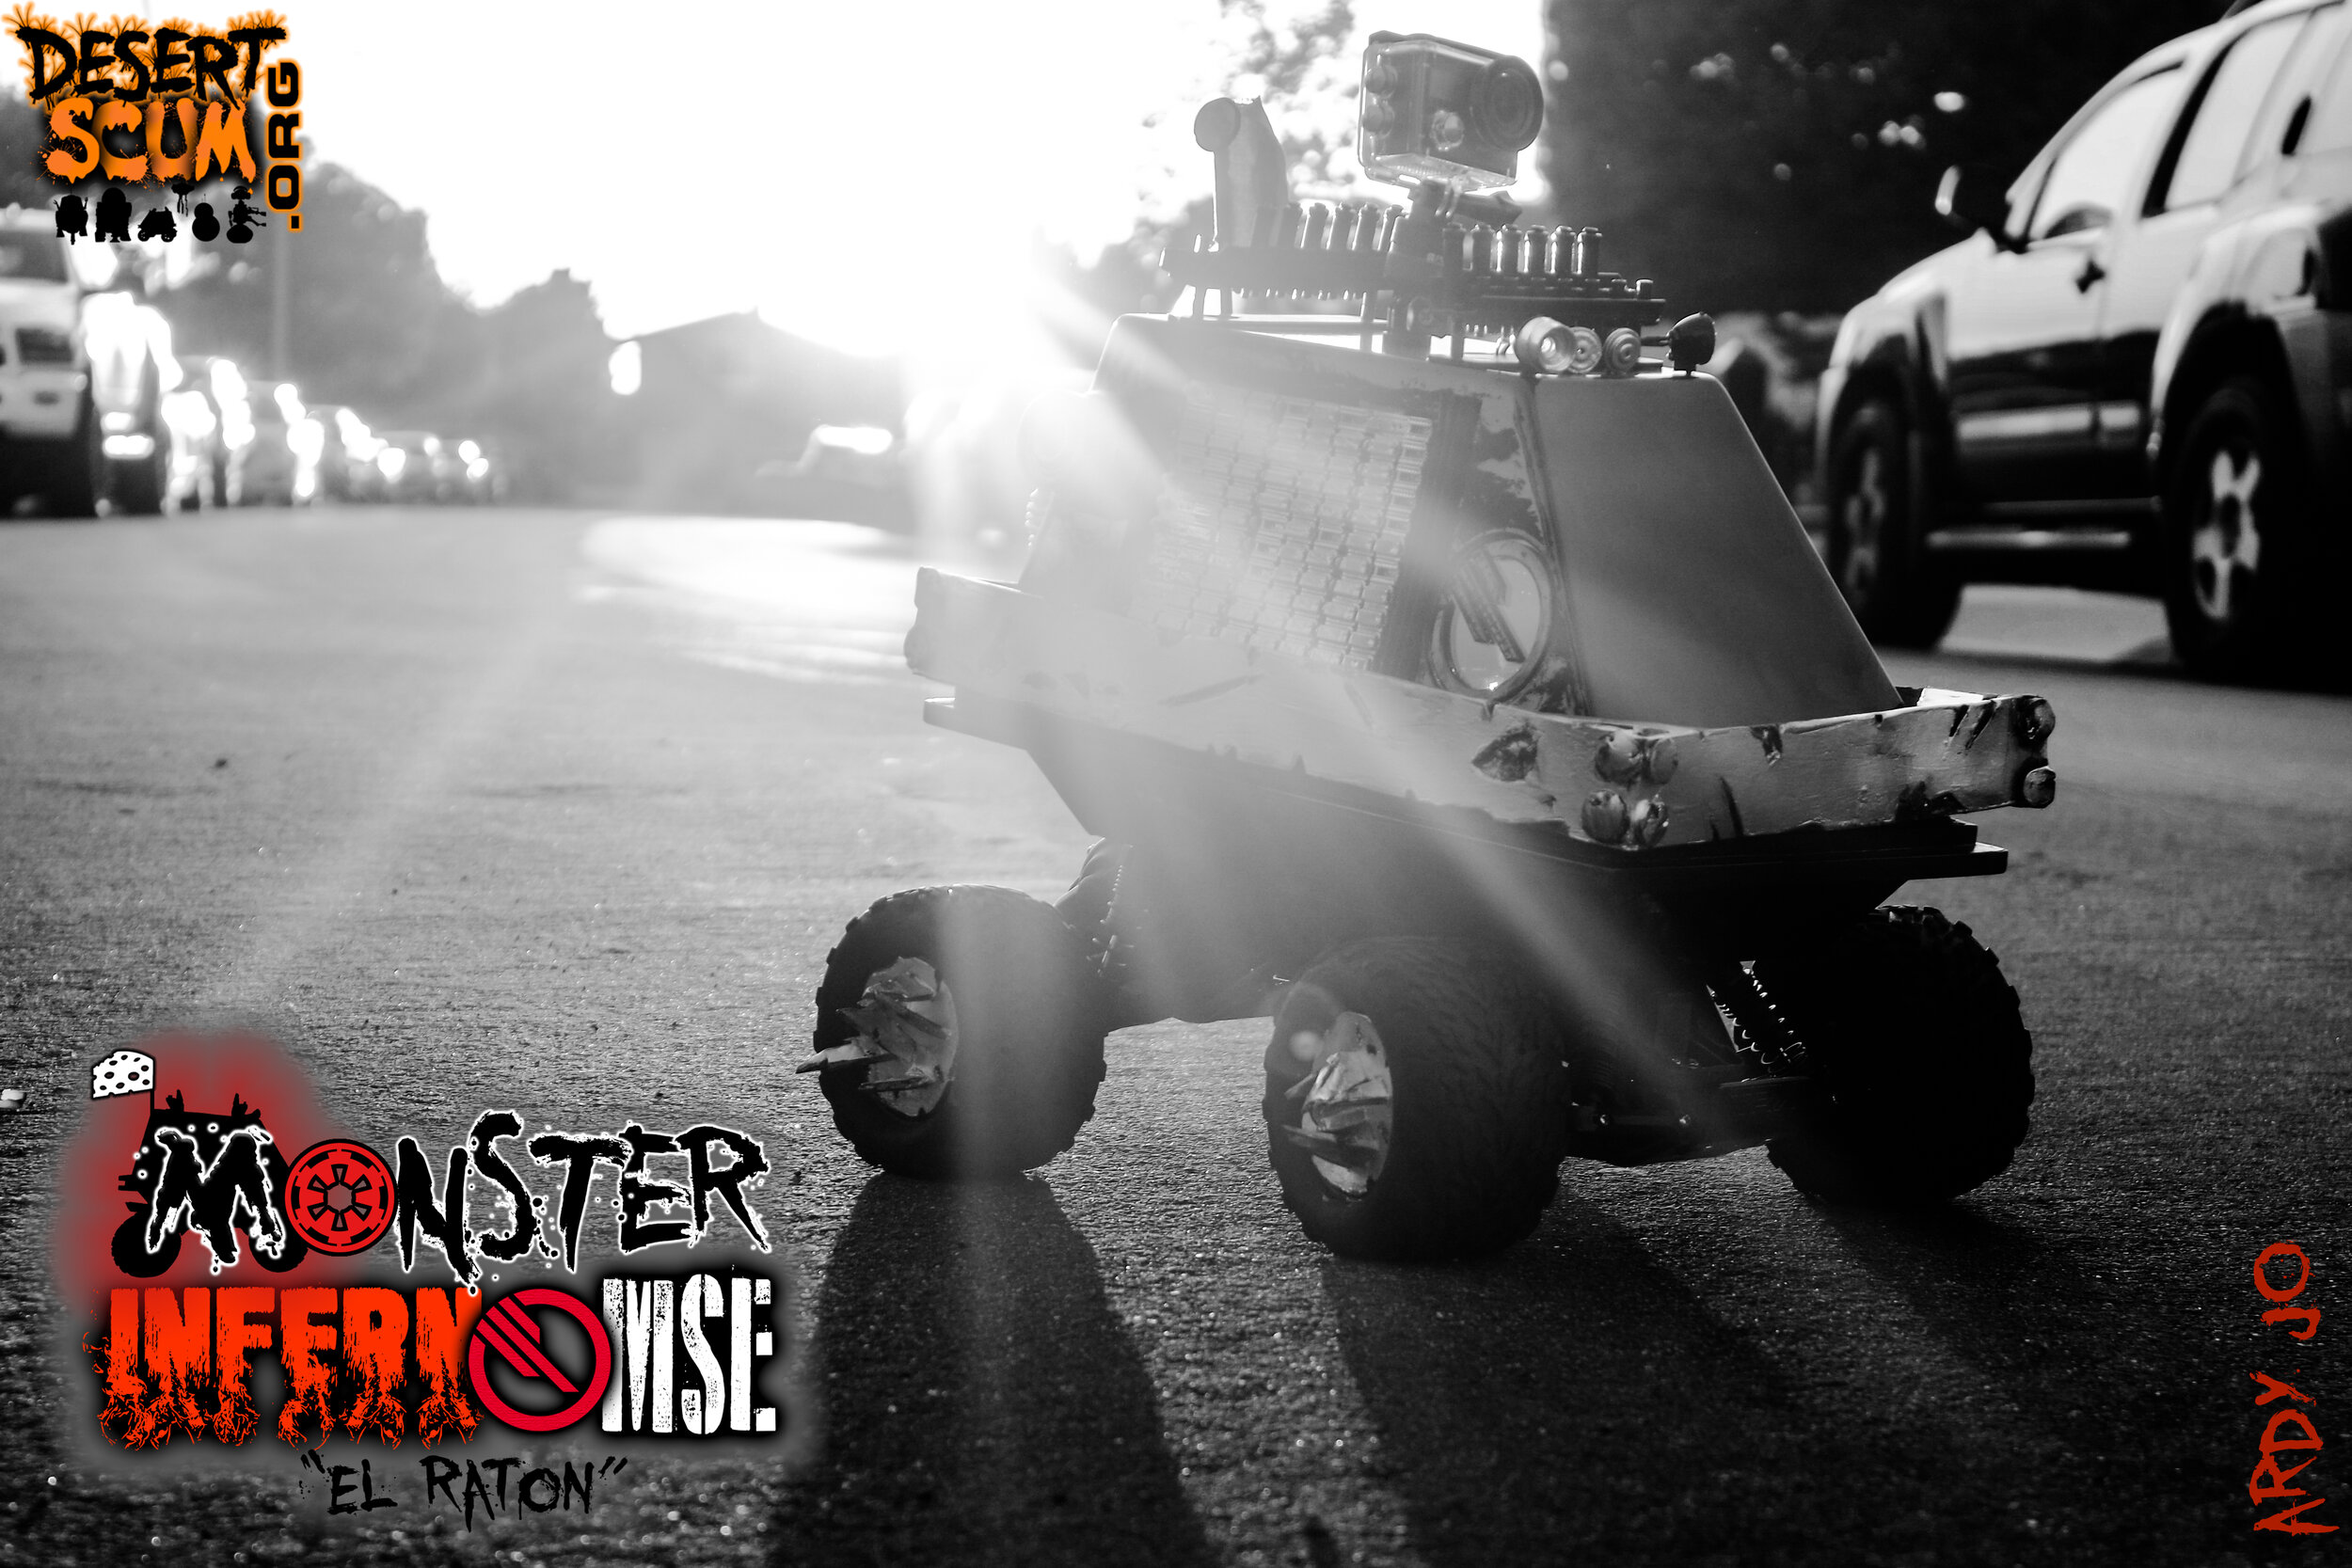 Monster Inferno MSE El Raton